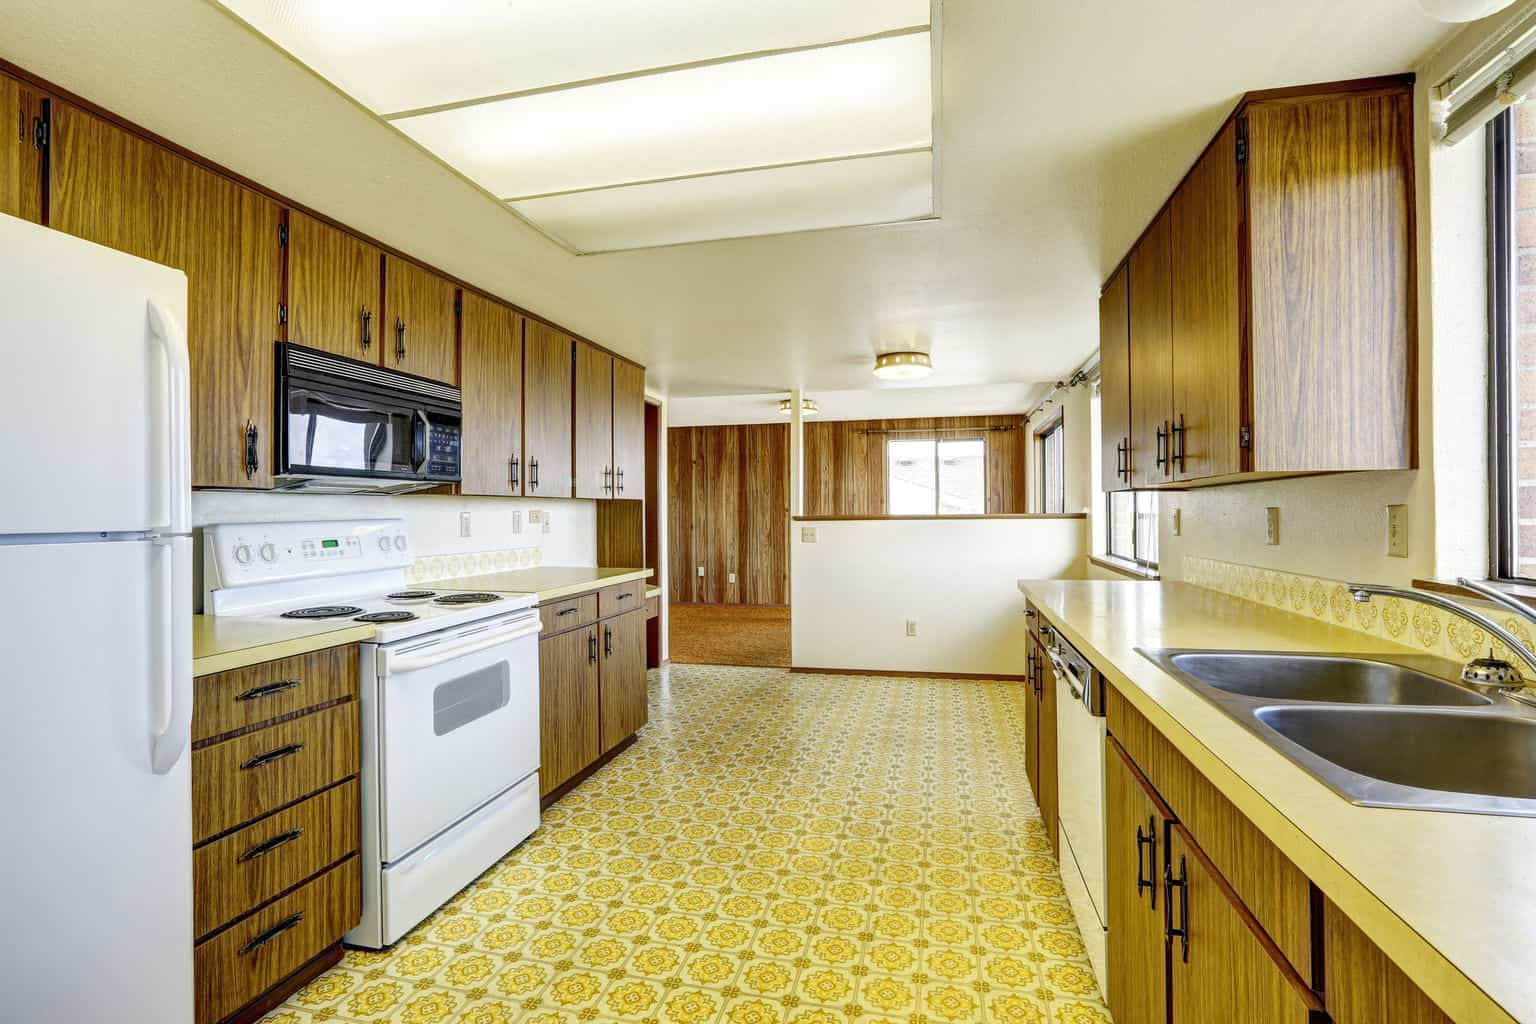 Linoleum kitchen images galleries for Kitchen linoleum tiles